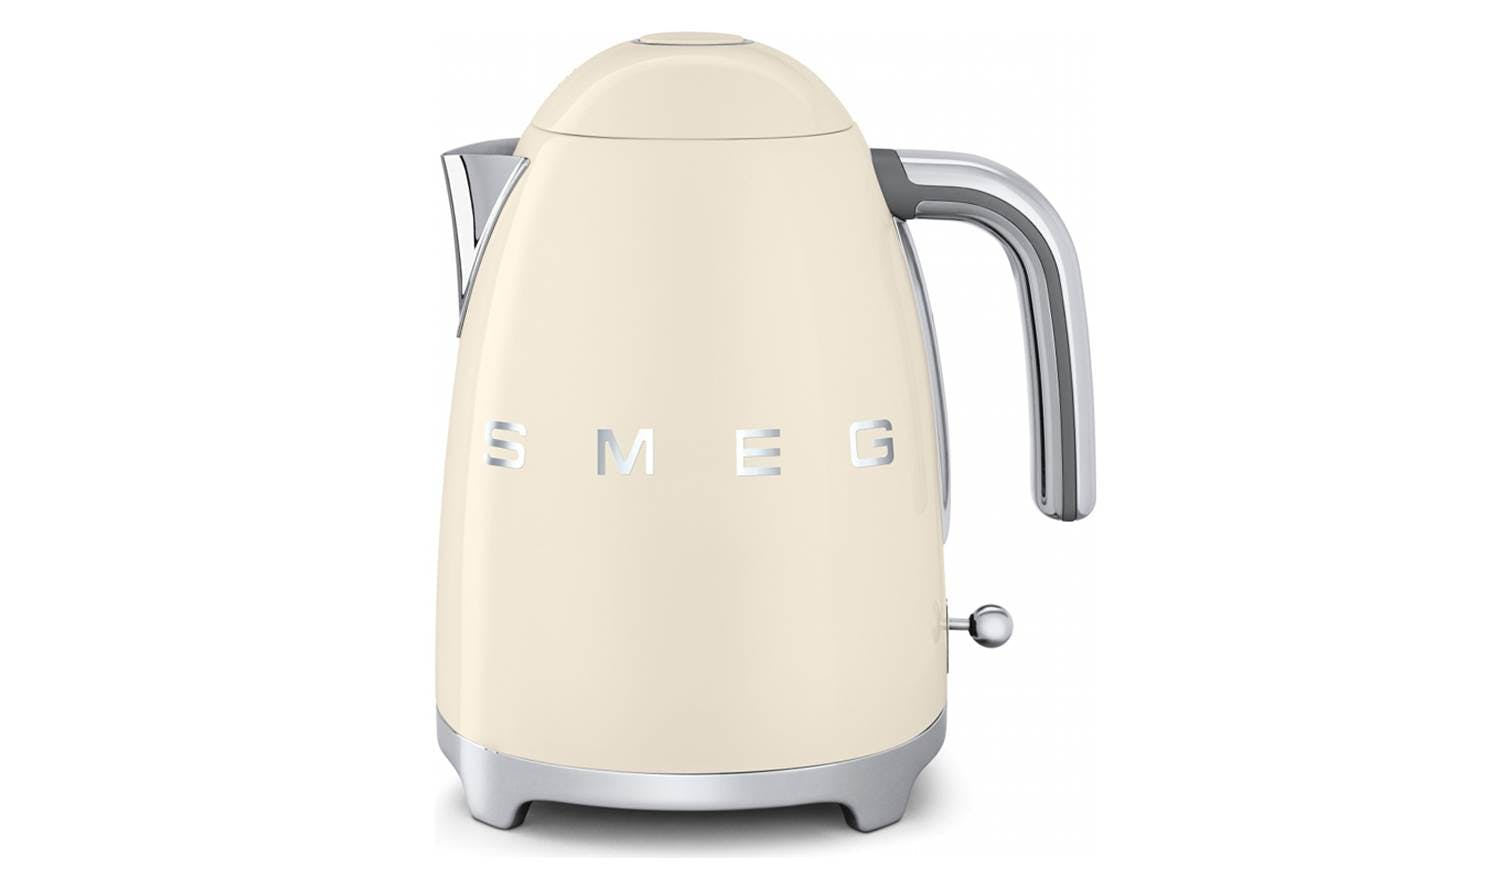 smeg kitchen appliances harvey norman with Index Php on Smeg 50s Style Longslot Toaster together with Smeg Launches Dolce Gabbana Kitchen Appliances furthermore 80 moreover Bosch Serie 2 Sms25ei00g Full Size Dishwasher Silver 10164890 Pdt furthermore Smeg.